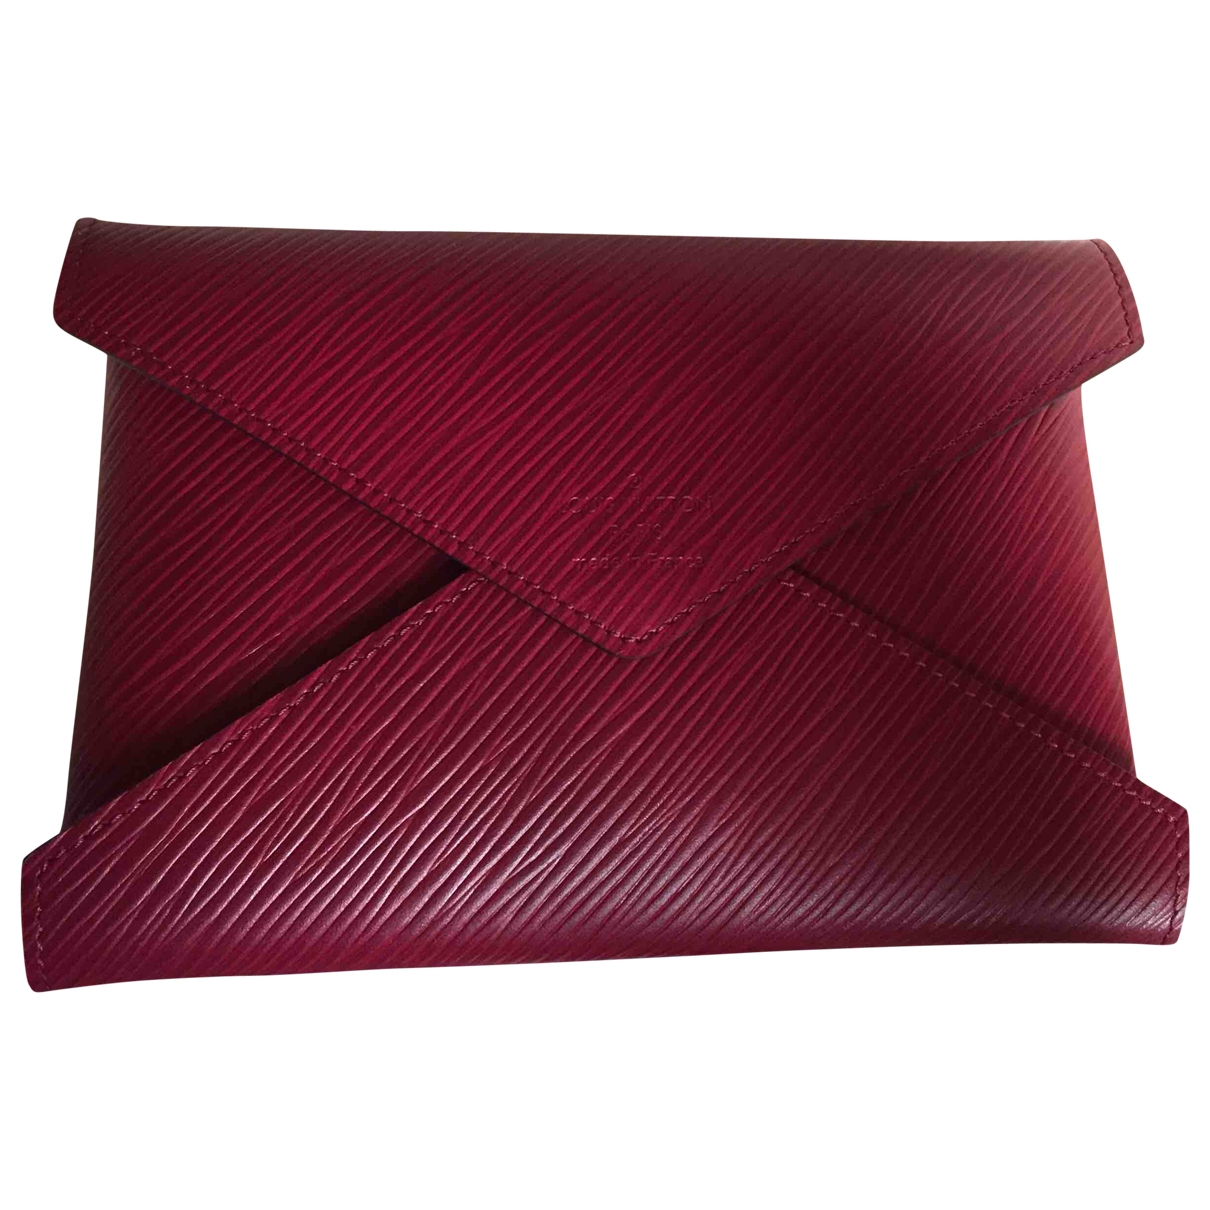 Louis Vuitton Kirigami Purple Leather Purses, wallet & cases for Women \N